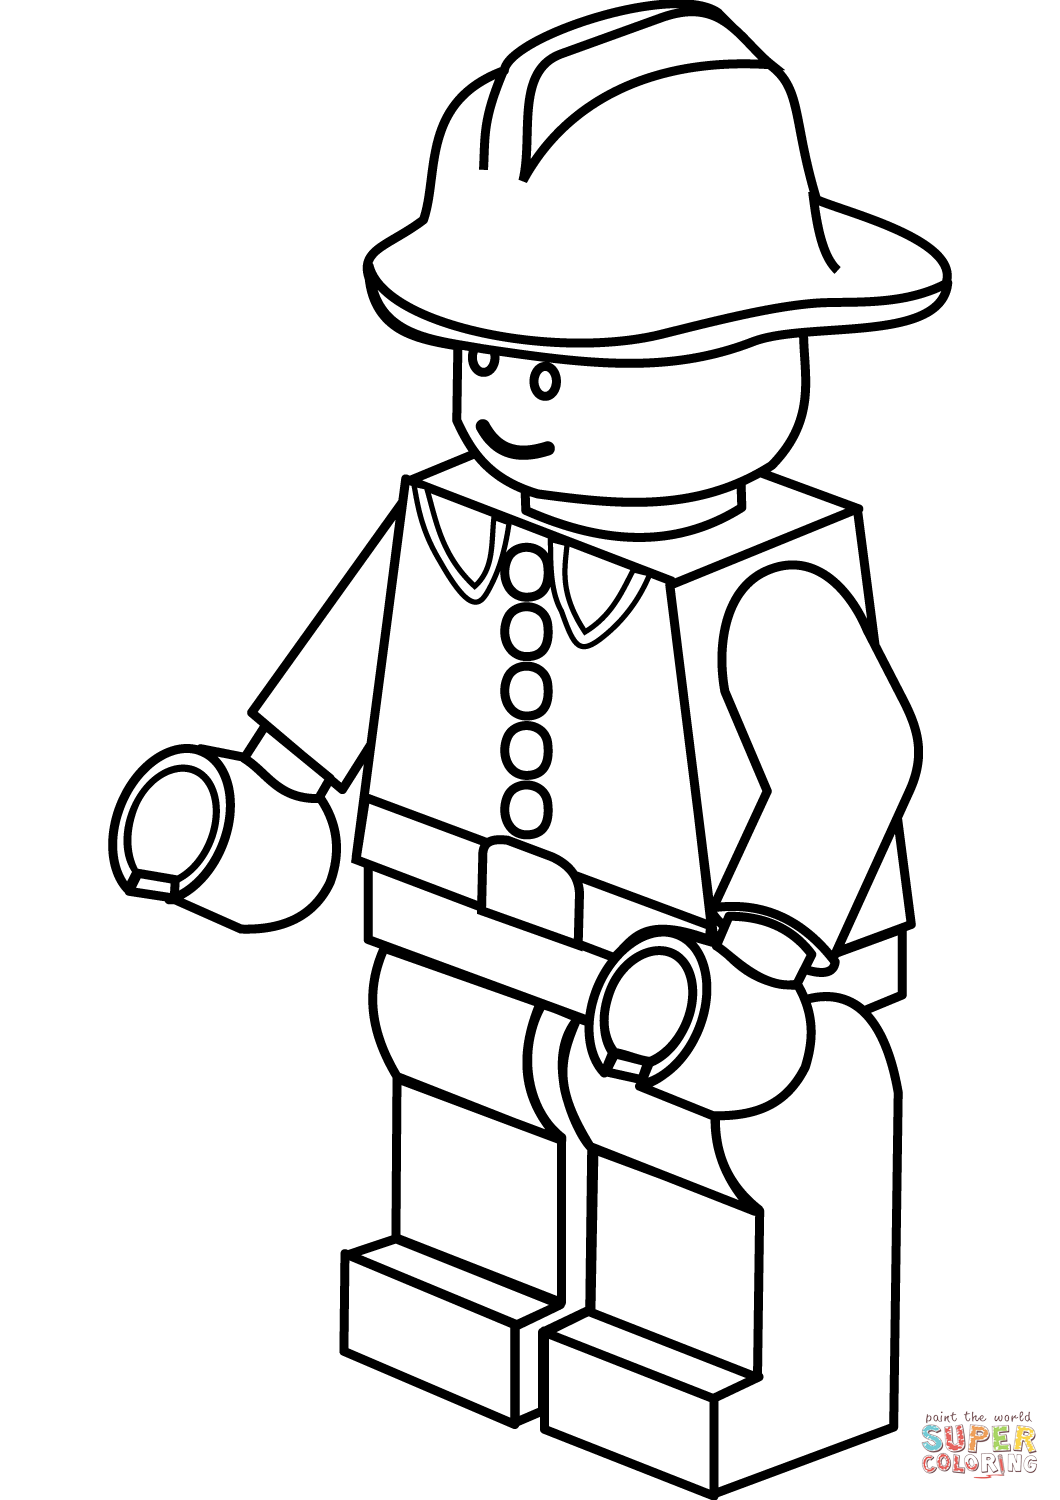 lego drawings to colour lego people coloring lesson coloring pages for kids to drawings colour lego